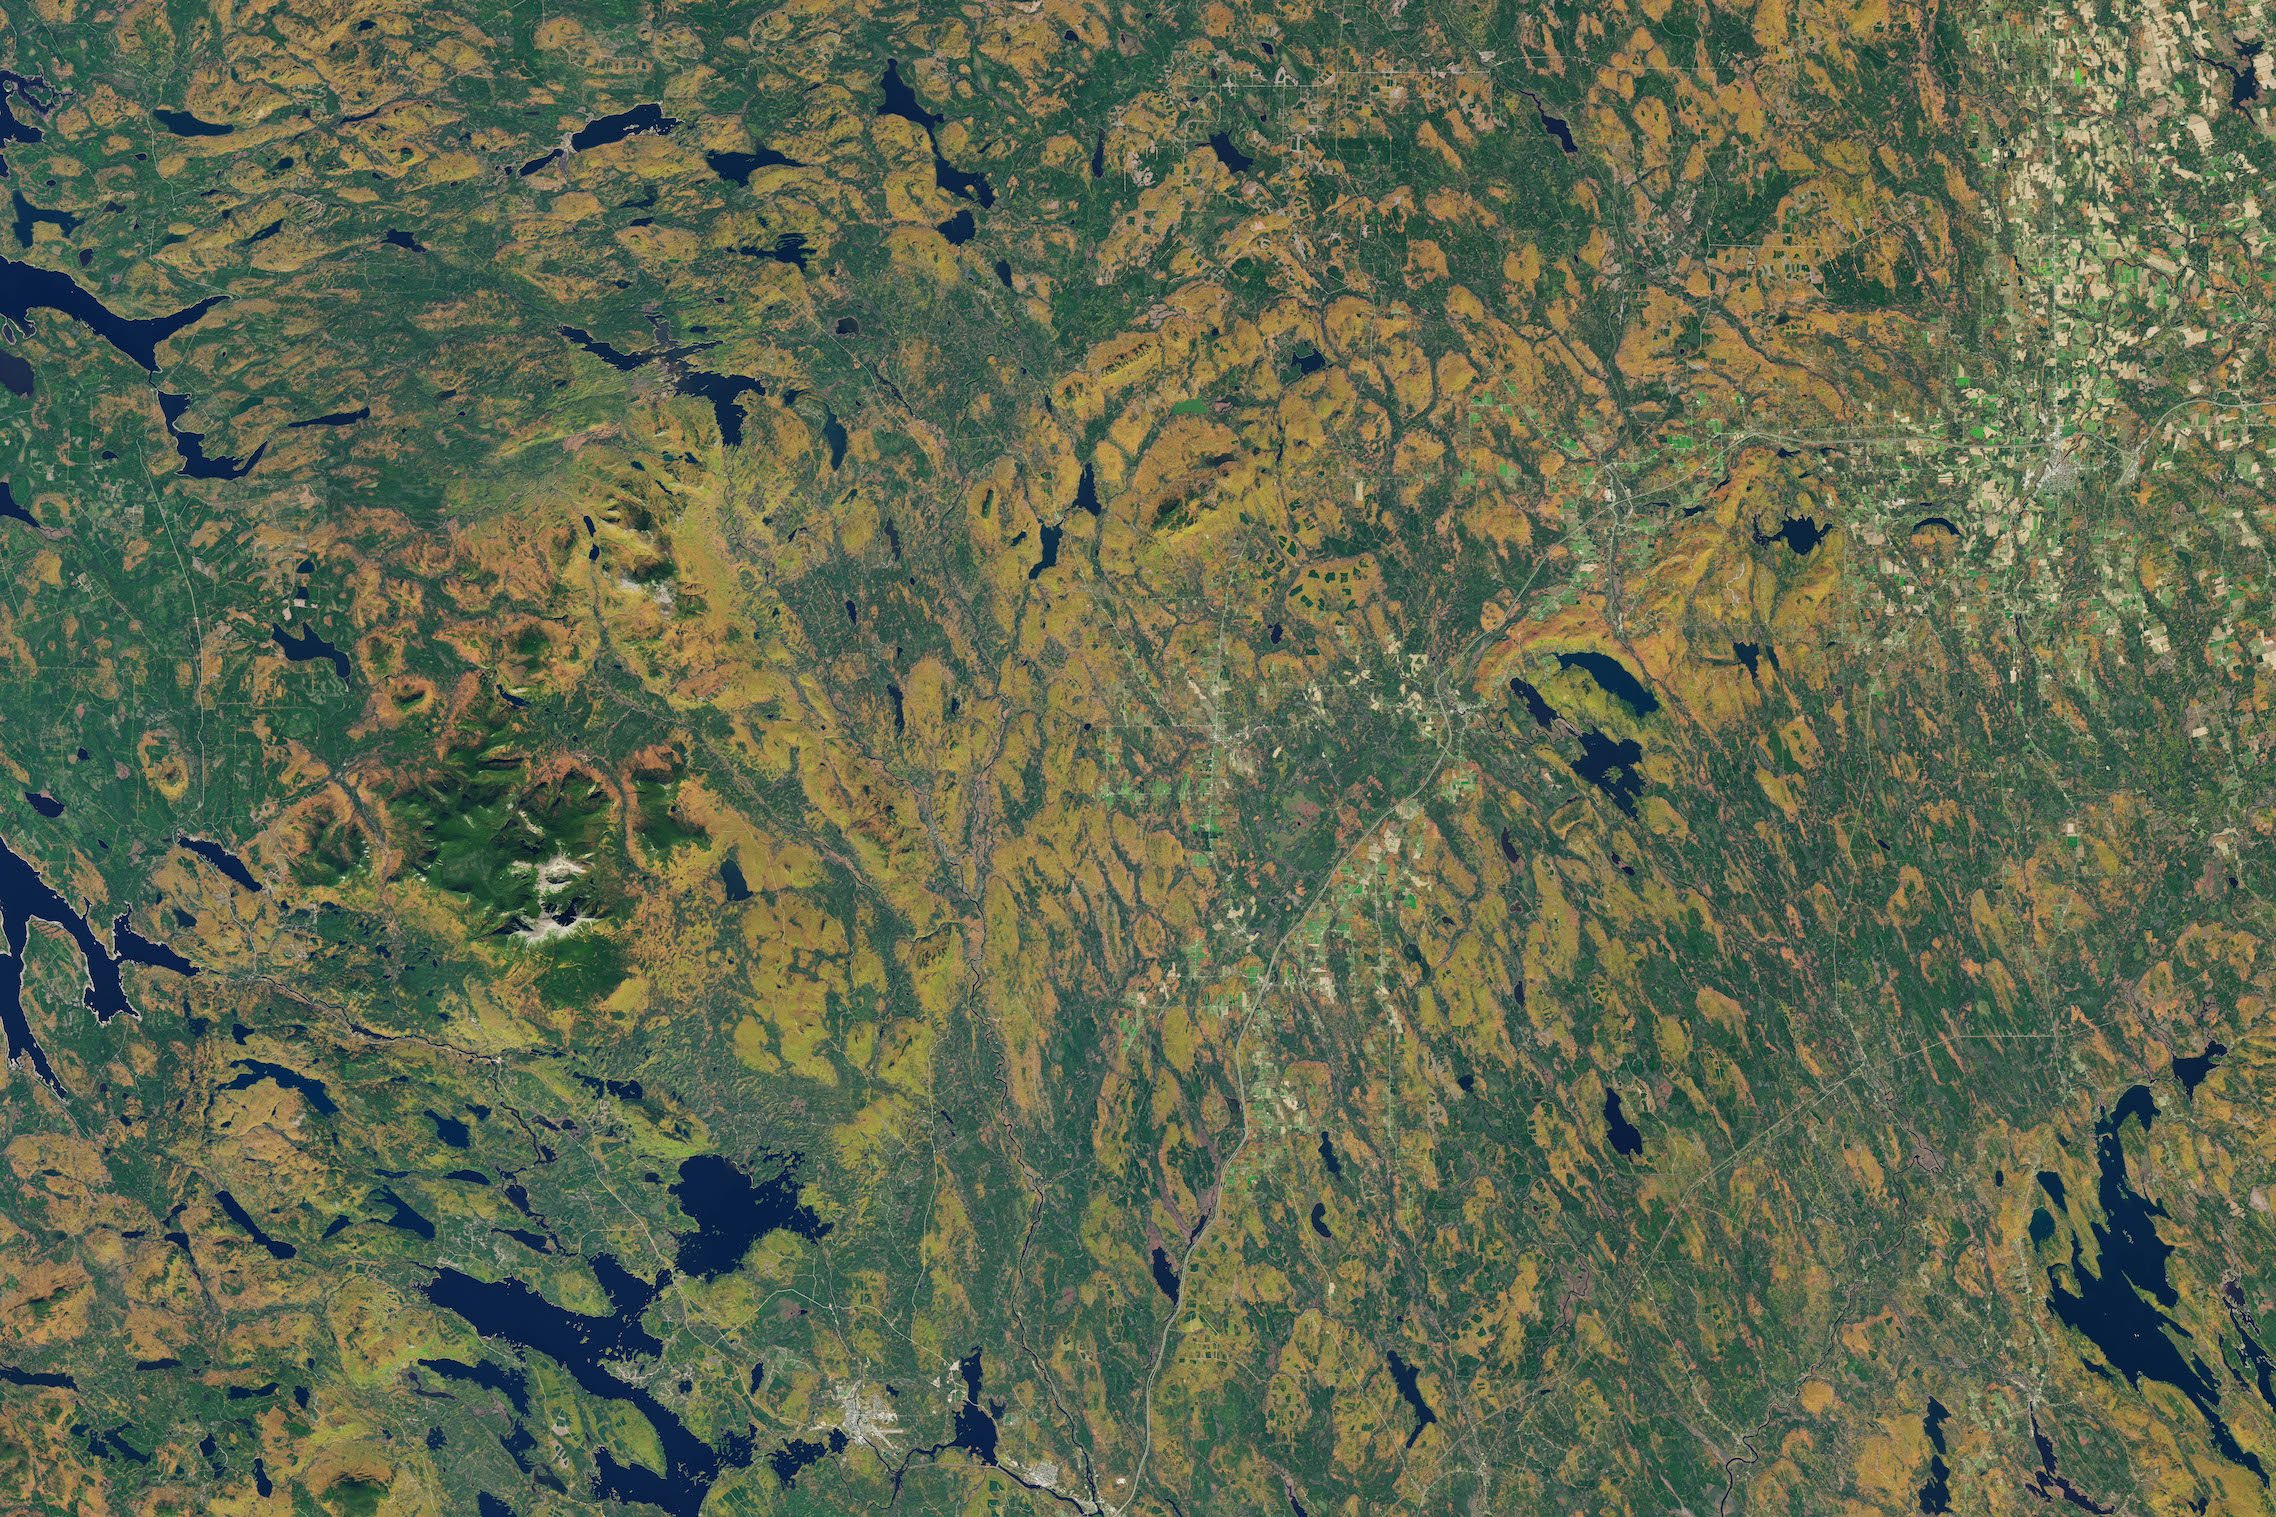 Today's Image of the Day comes thanks to the NASA Earth Observatory and features a look at some beautiful autumn foliage in Maine.